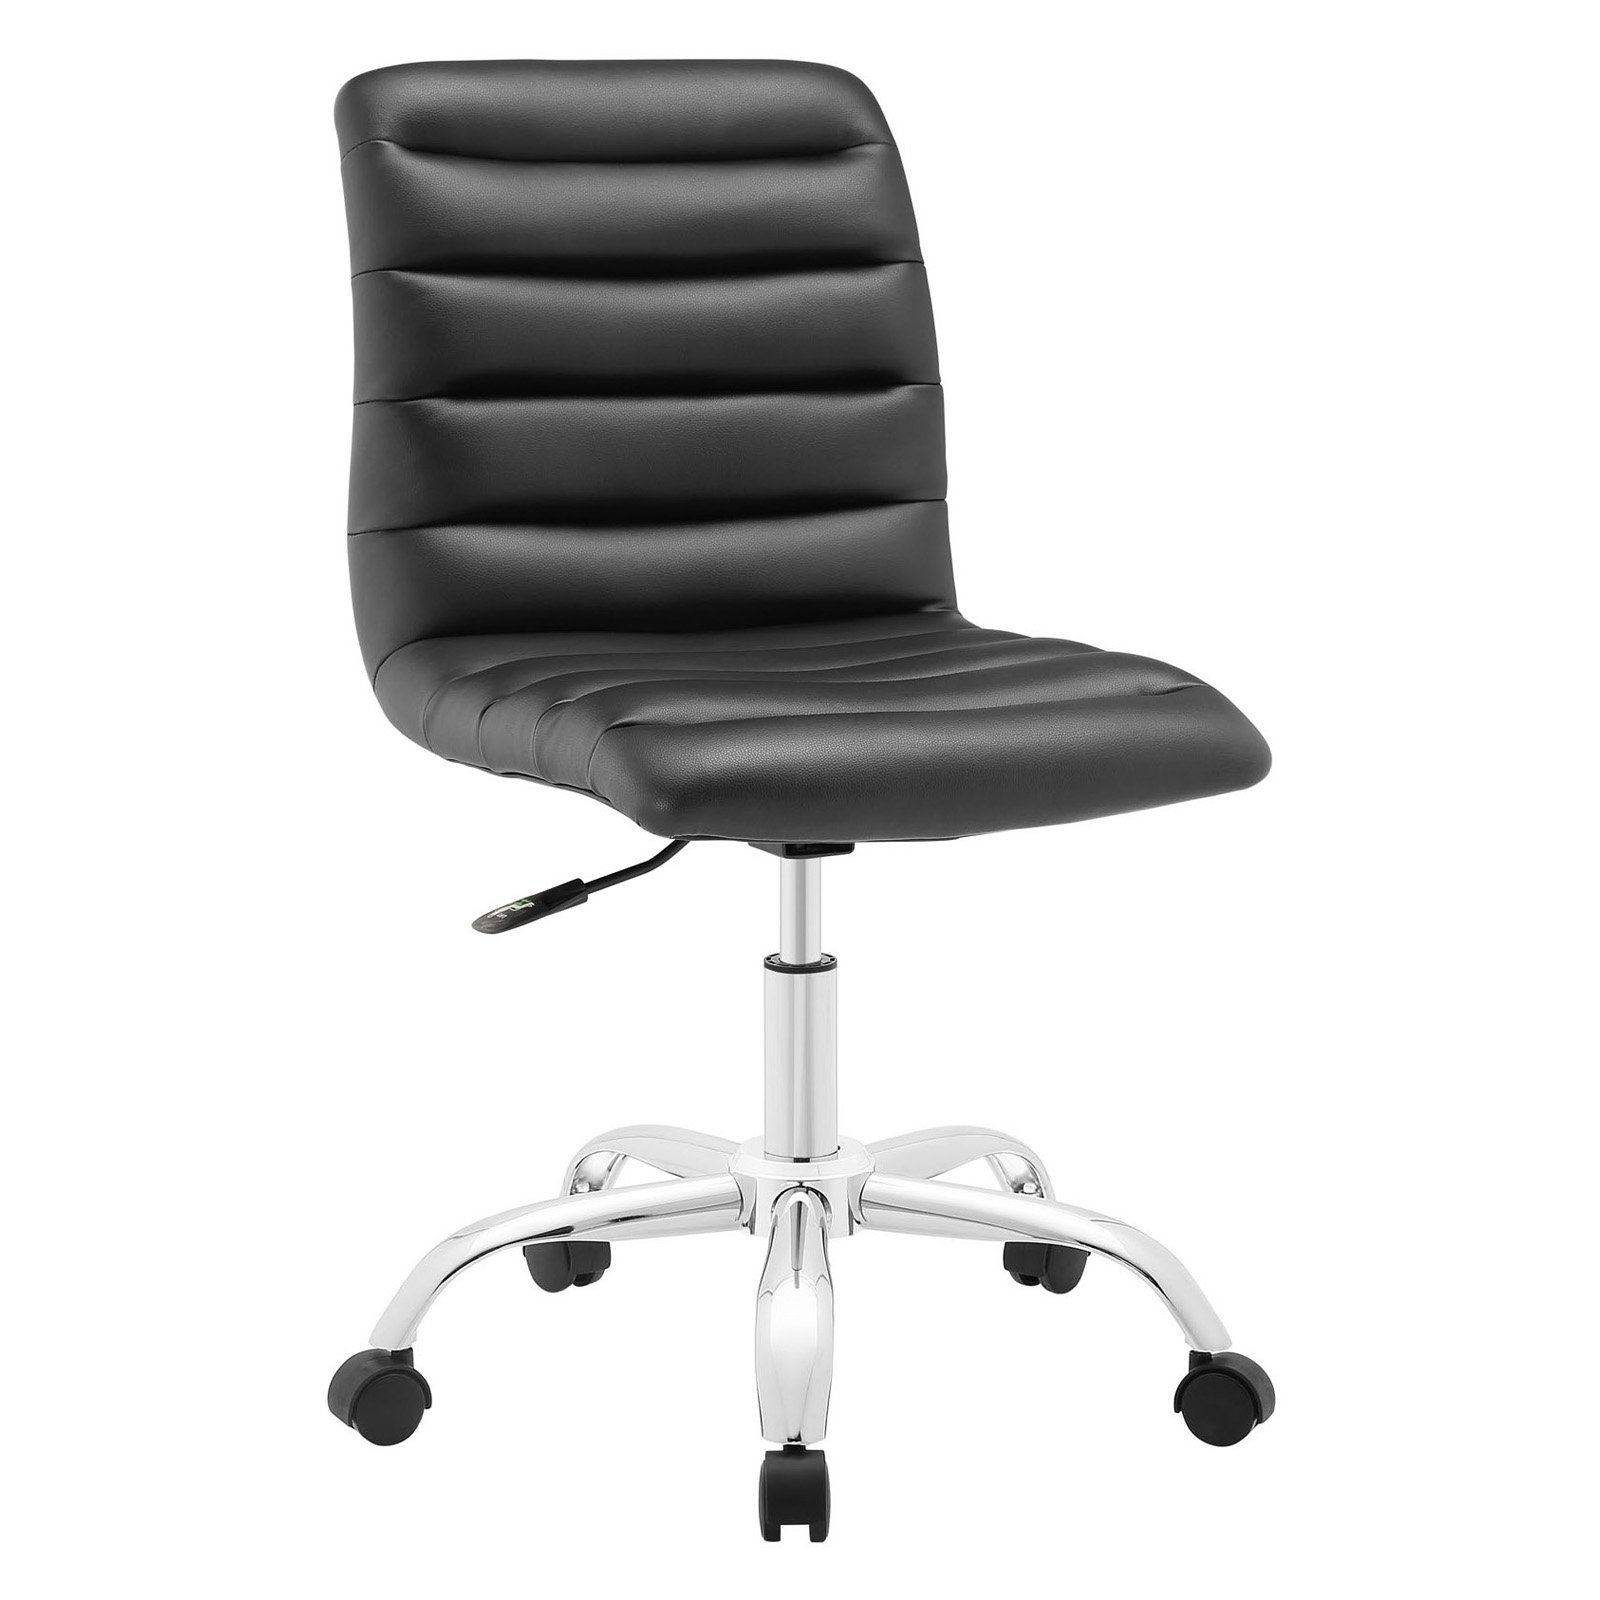 Modway Ripple Armless Mid Back Leatherette fice Chair Multiple